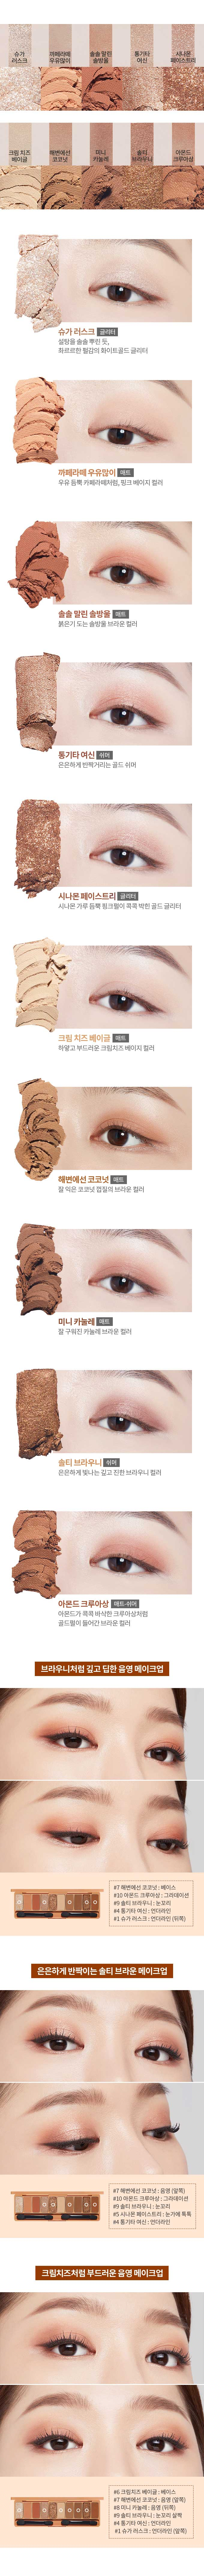 play-color-eyes-bakehouse-korean-cosmetics2.jpg